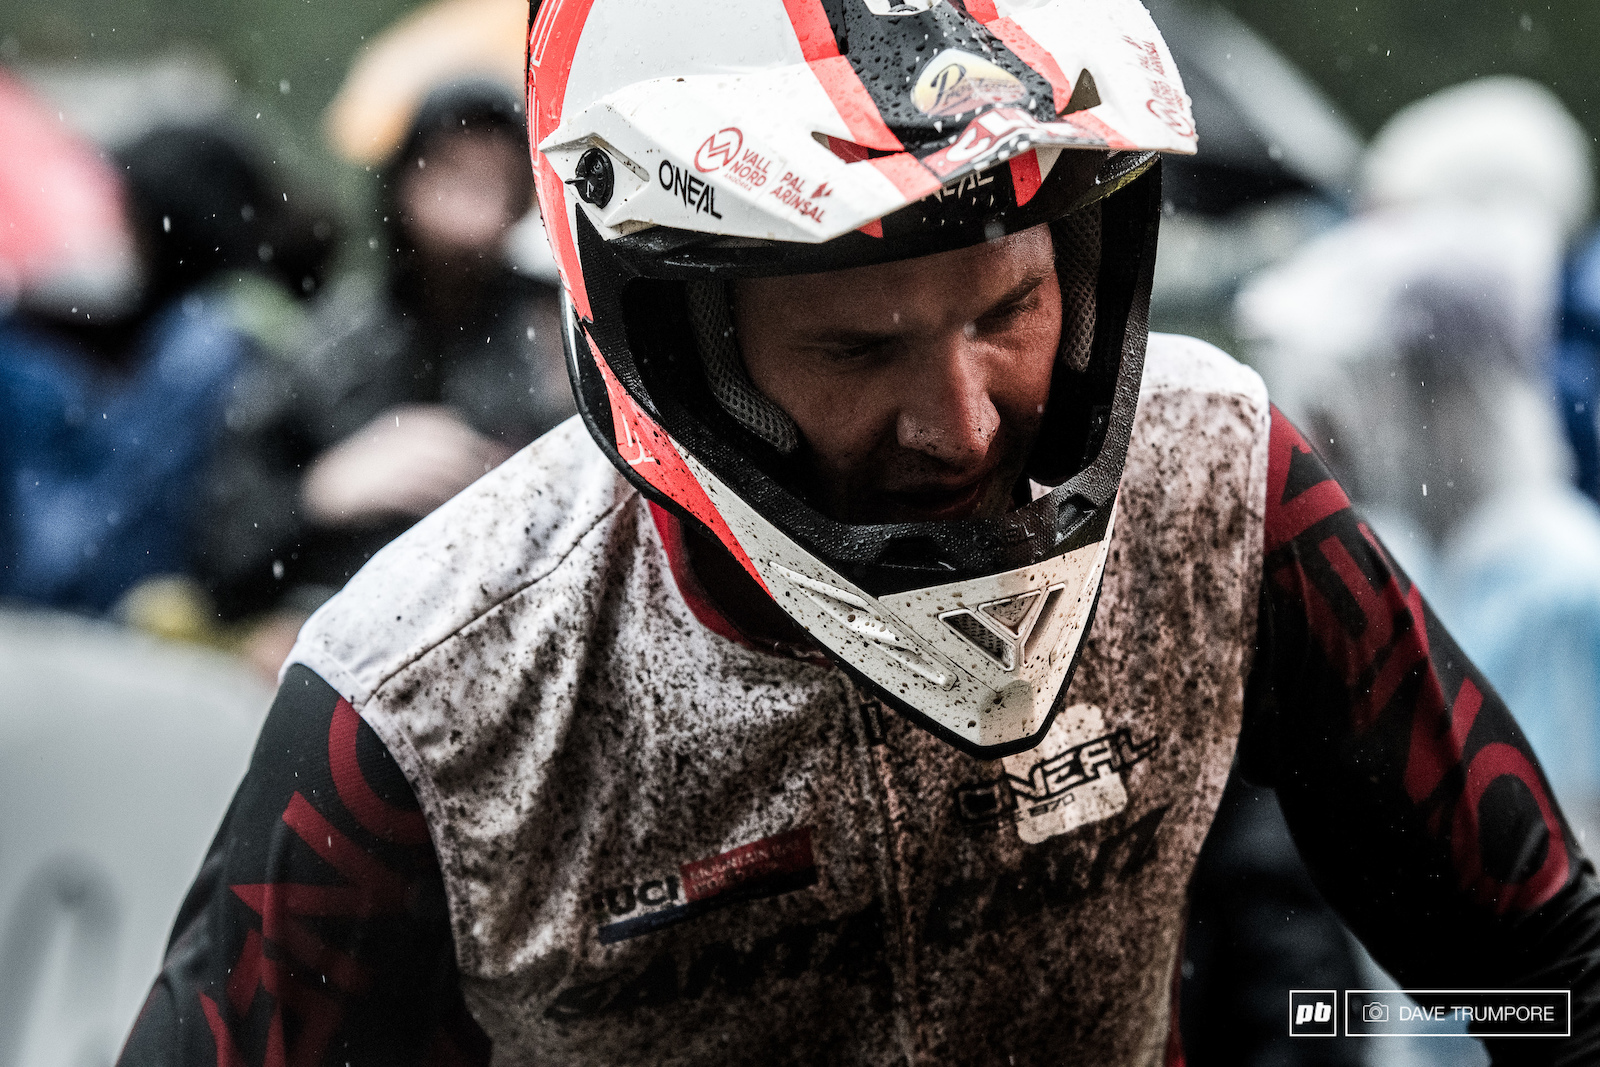 A visibly frustrated and upset Greg Minnaar in the finish arena after his troublesome run.